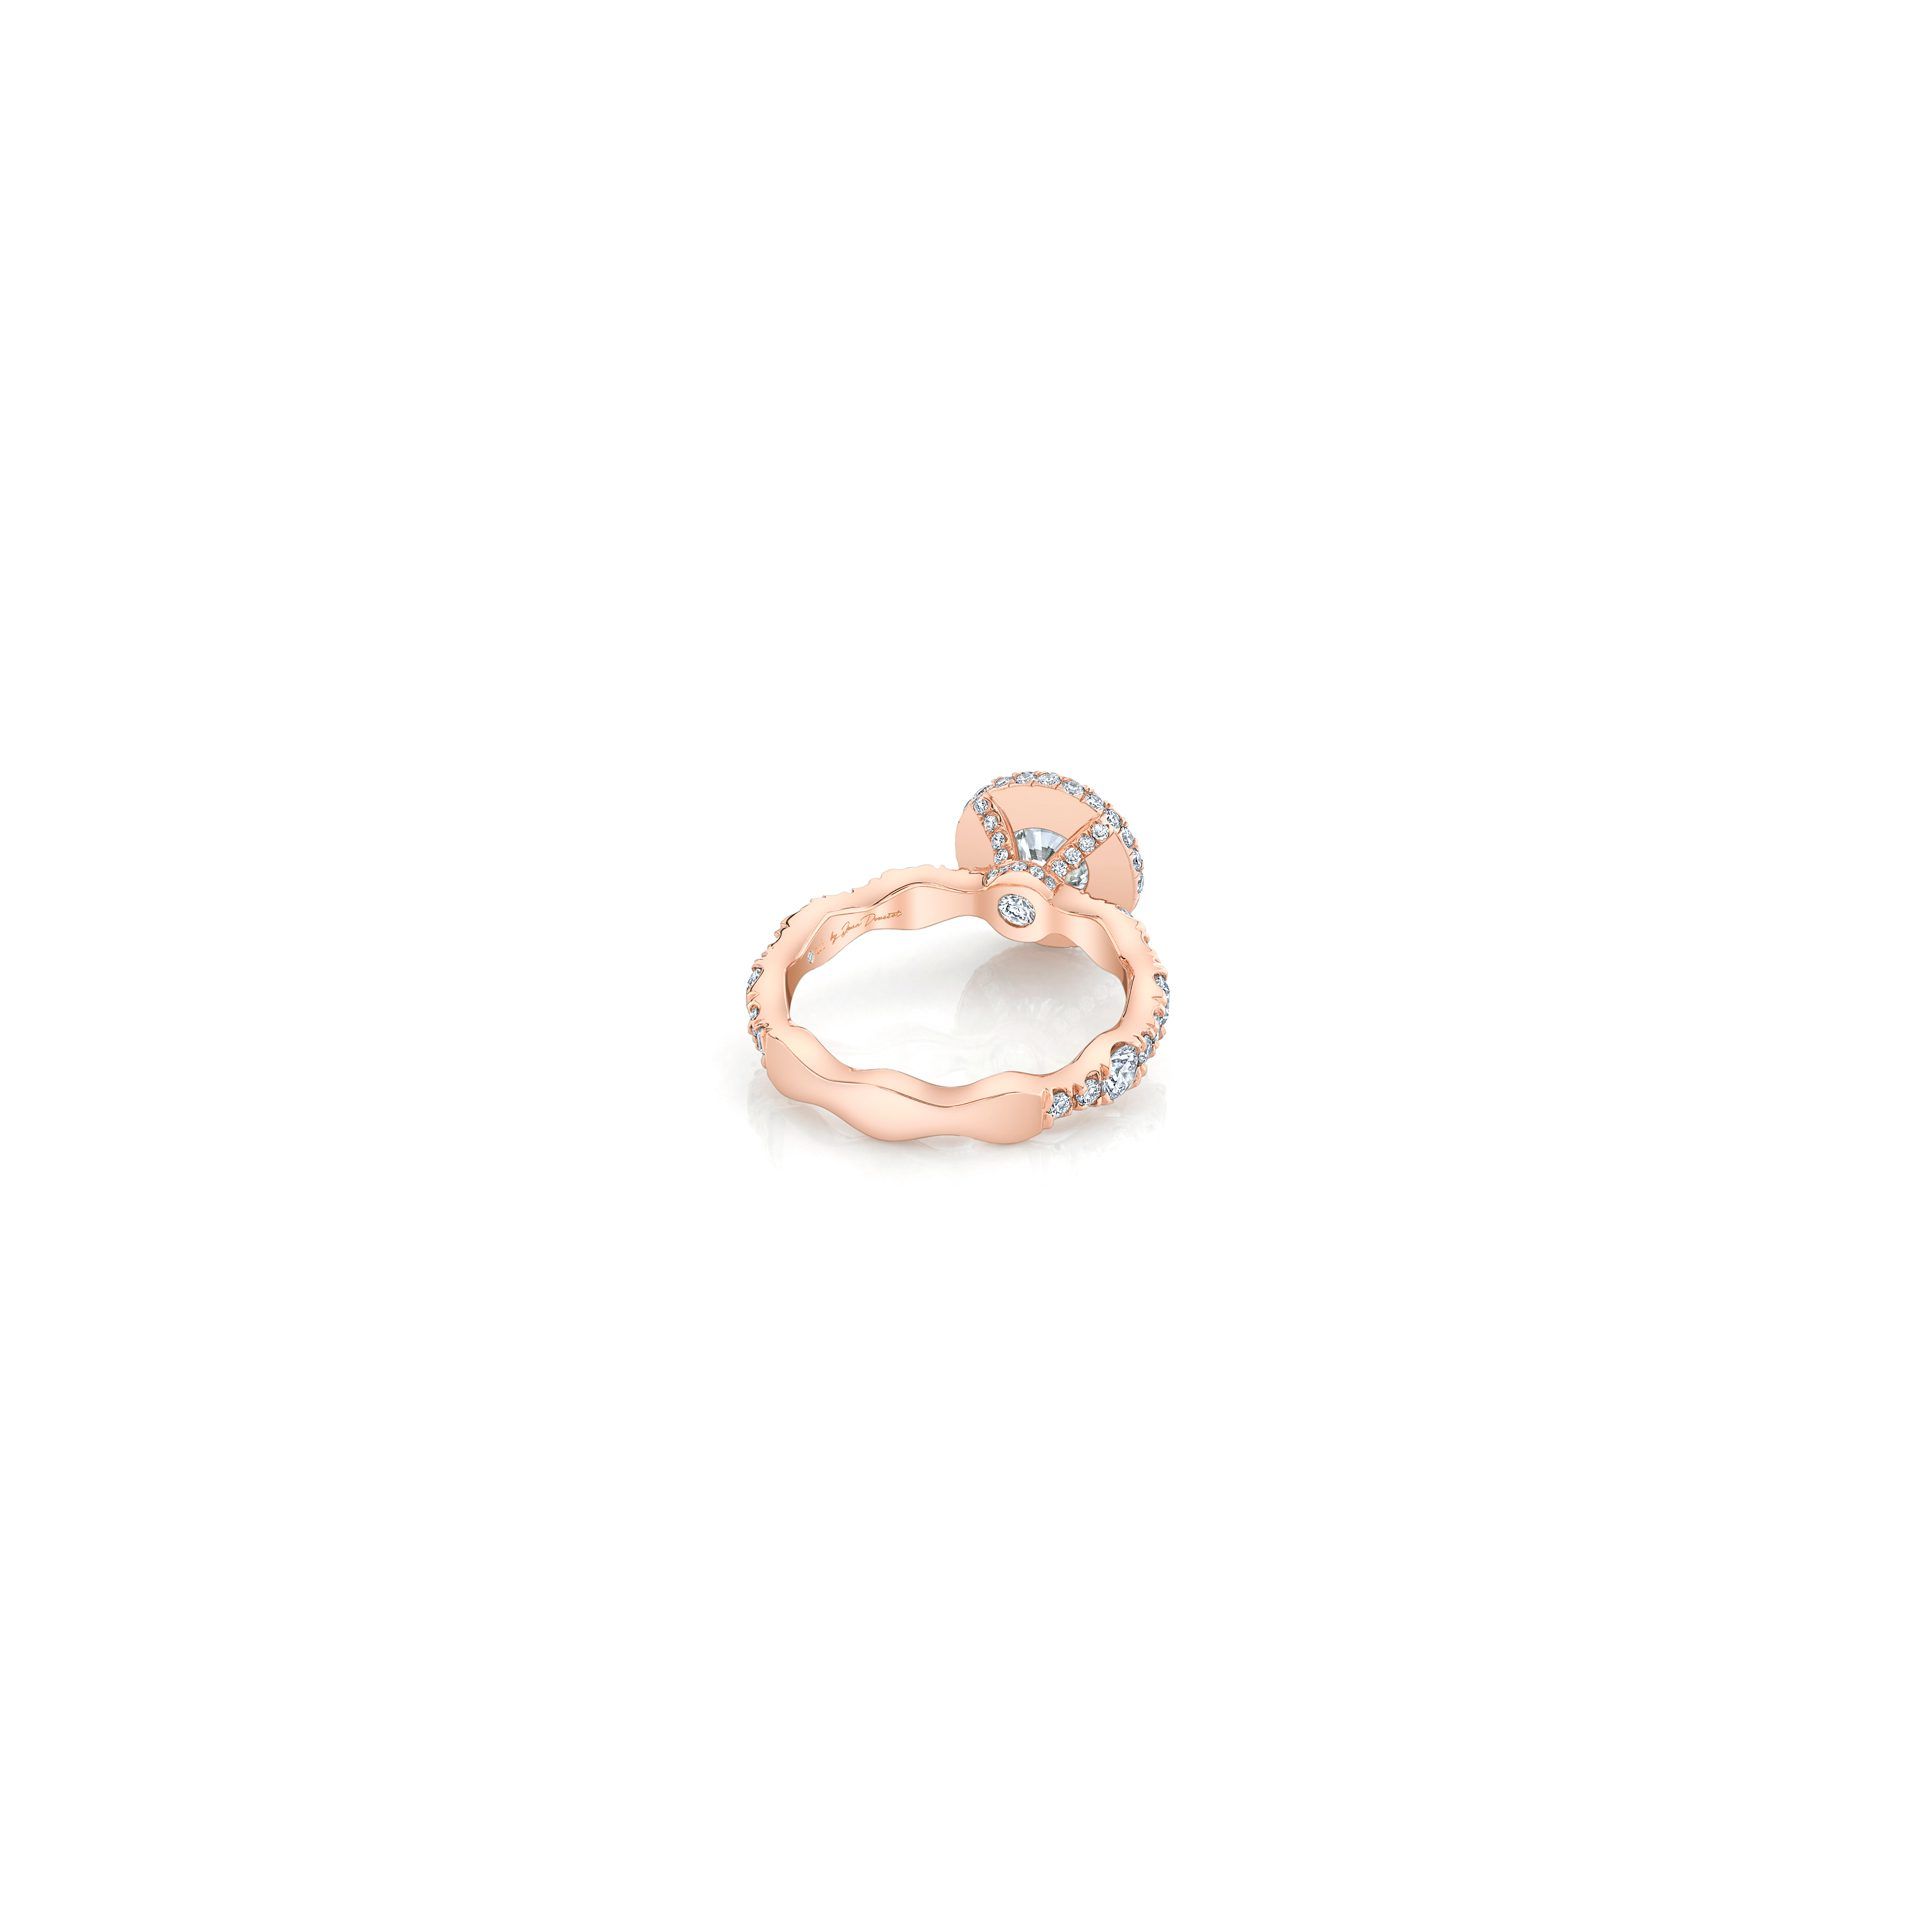 Yvonne Round Brilliant Seamless Halo® Engagement Ring with a diamond pavé wave band in 18k Rose Gold Back View by Oui by Jean DoussetYvonne Round Brilliant Seamless Halo® Engagement Ring with a diamond pavé wave band in 18k Rose Gold by Oui by Jean Dousset